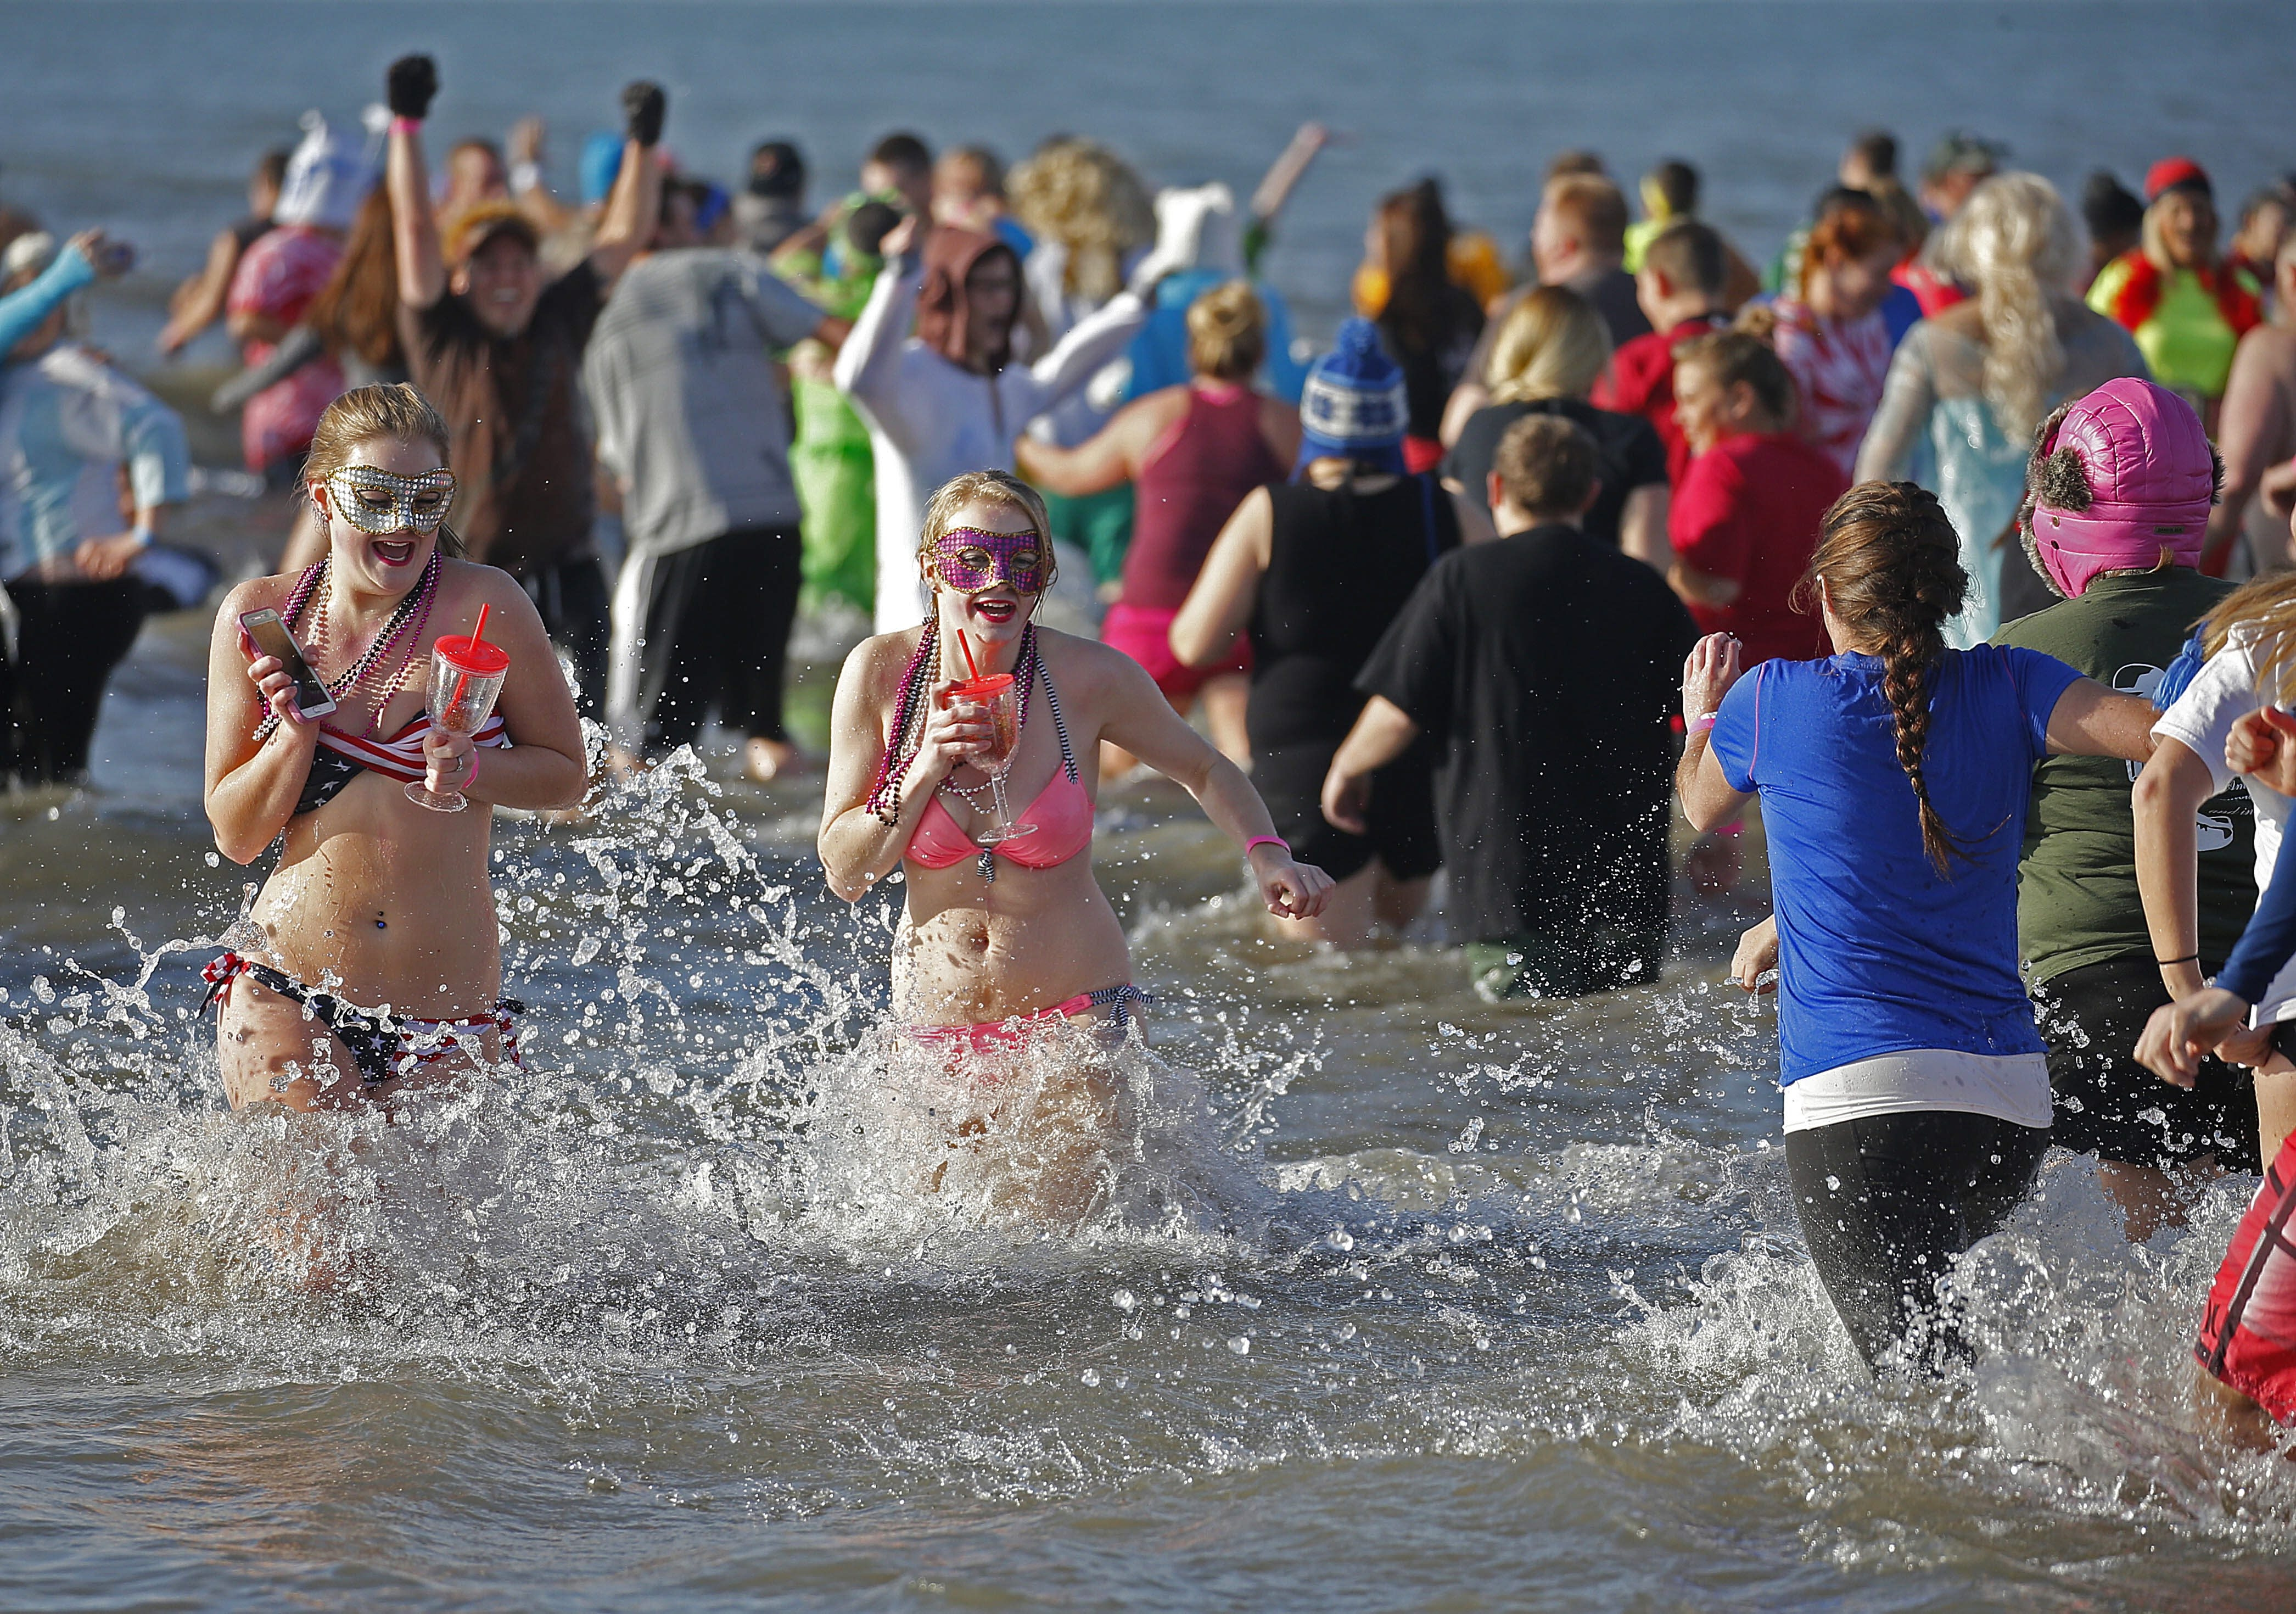 Saturday was a perfect day for silly hats and crazy costumes during the Polar Plunge at Woodlawn Beach on Lake Erie.